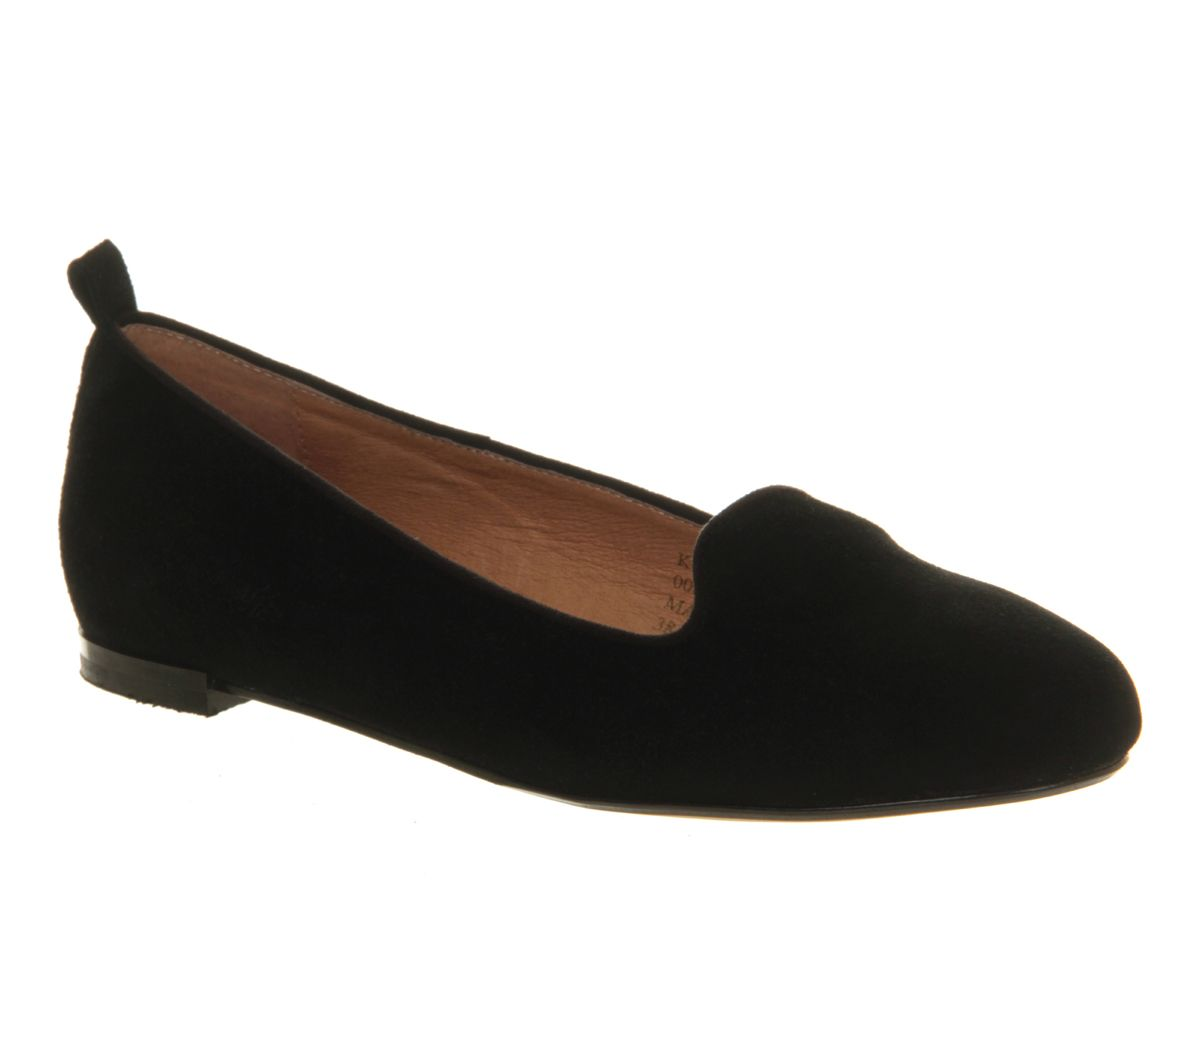 Kwik step suede flat slip on loafer shoes